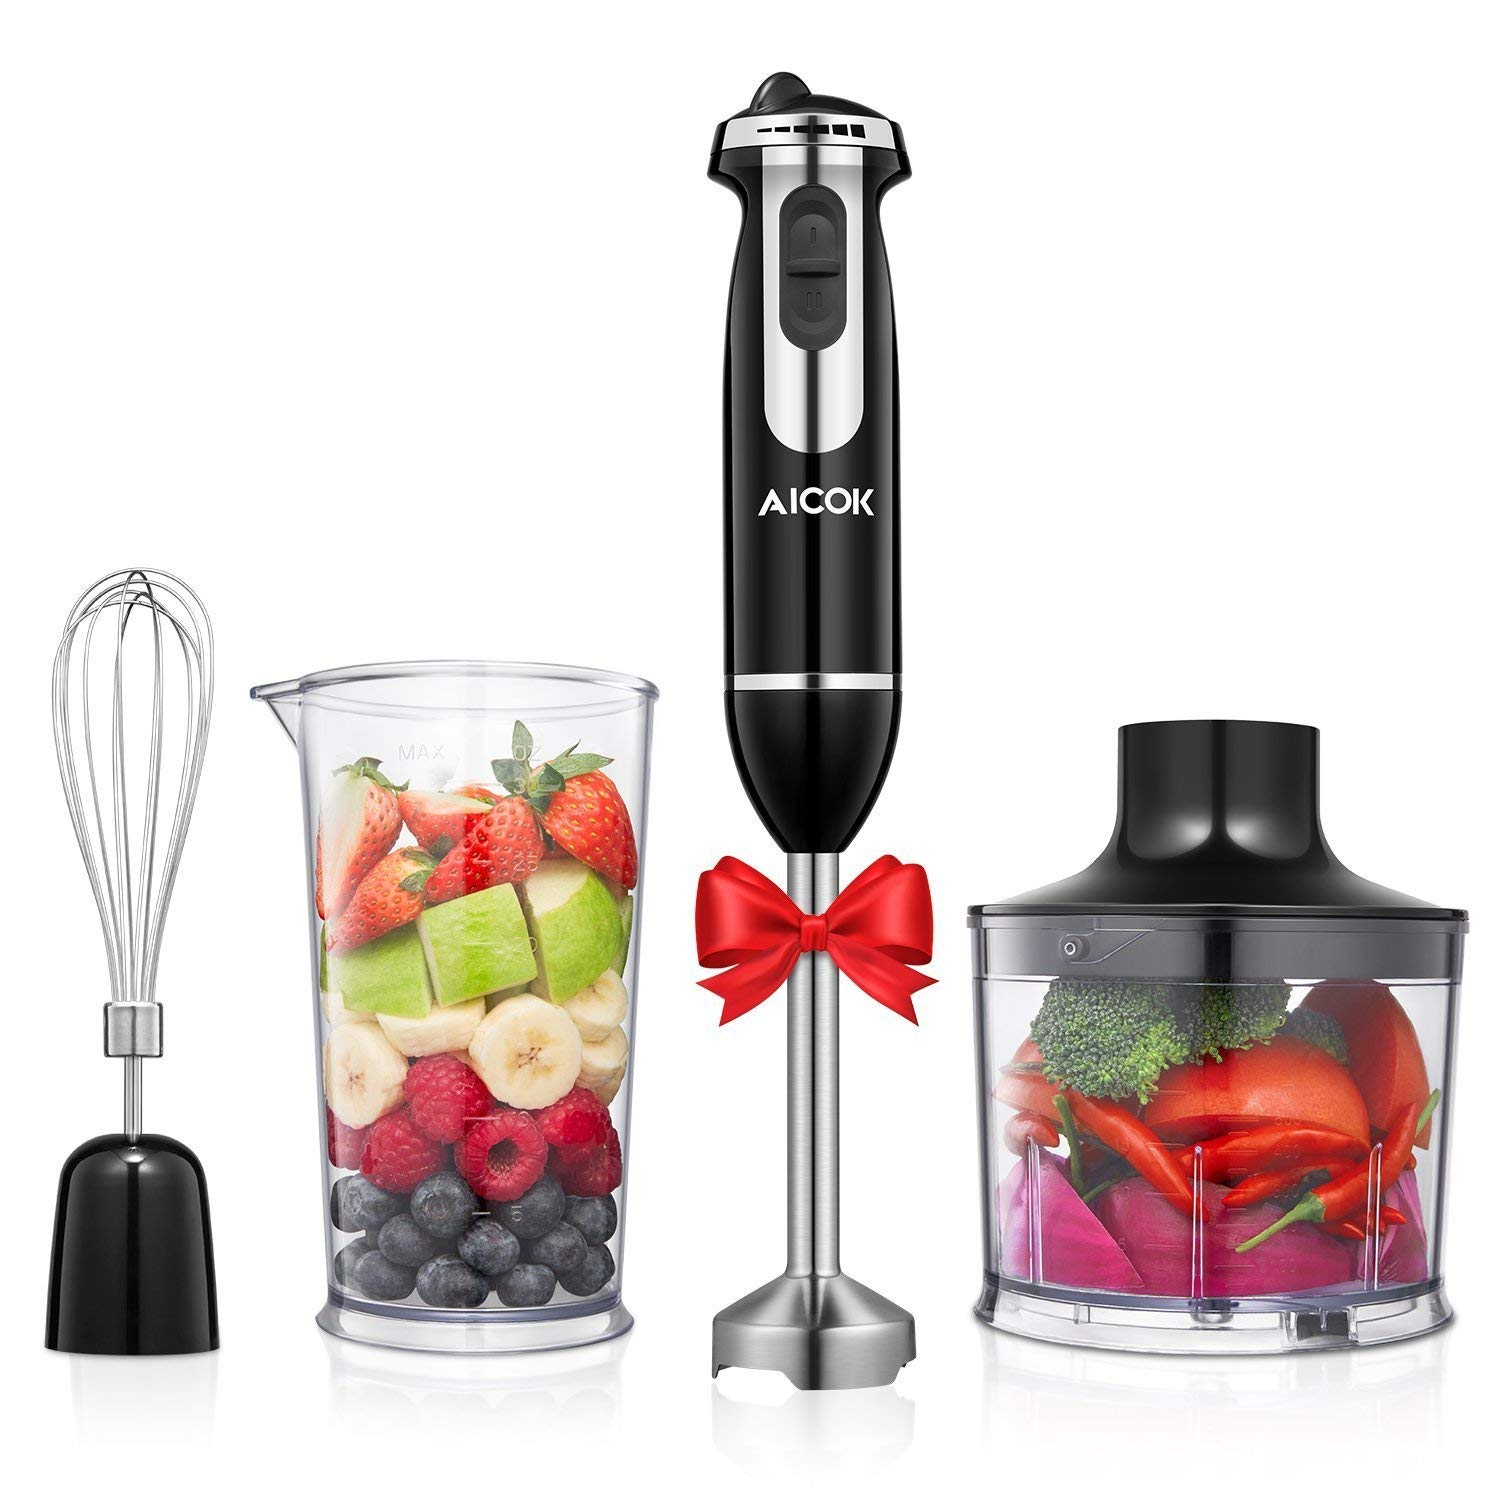 Aicok Hand Blender, 4 in 1 Immersion Blender with Mixing Beaker(800ml), Chopper, and Whisk, 12-Speeds, Multifunctional Blender with Anti-Splash Blade, BPA Free by AICOK